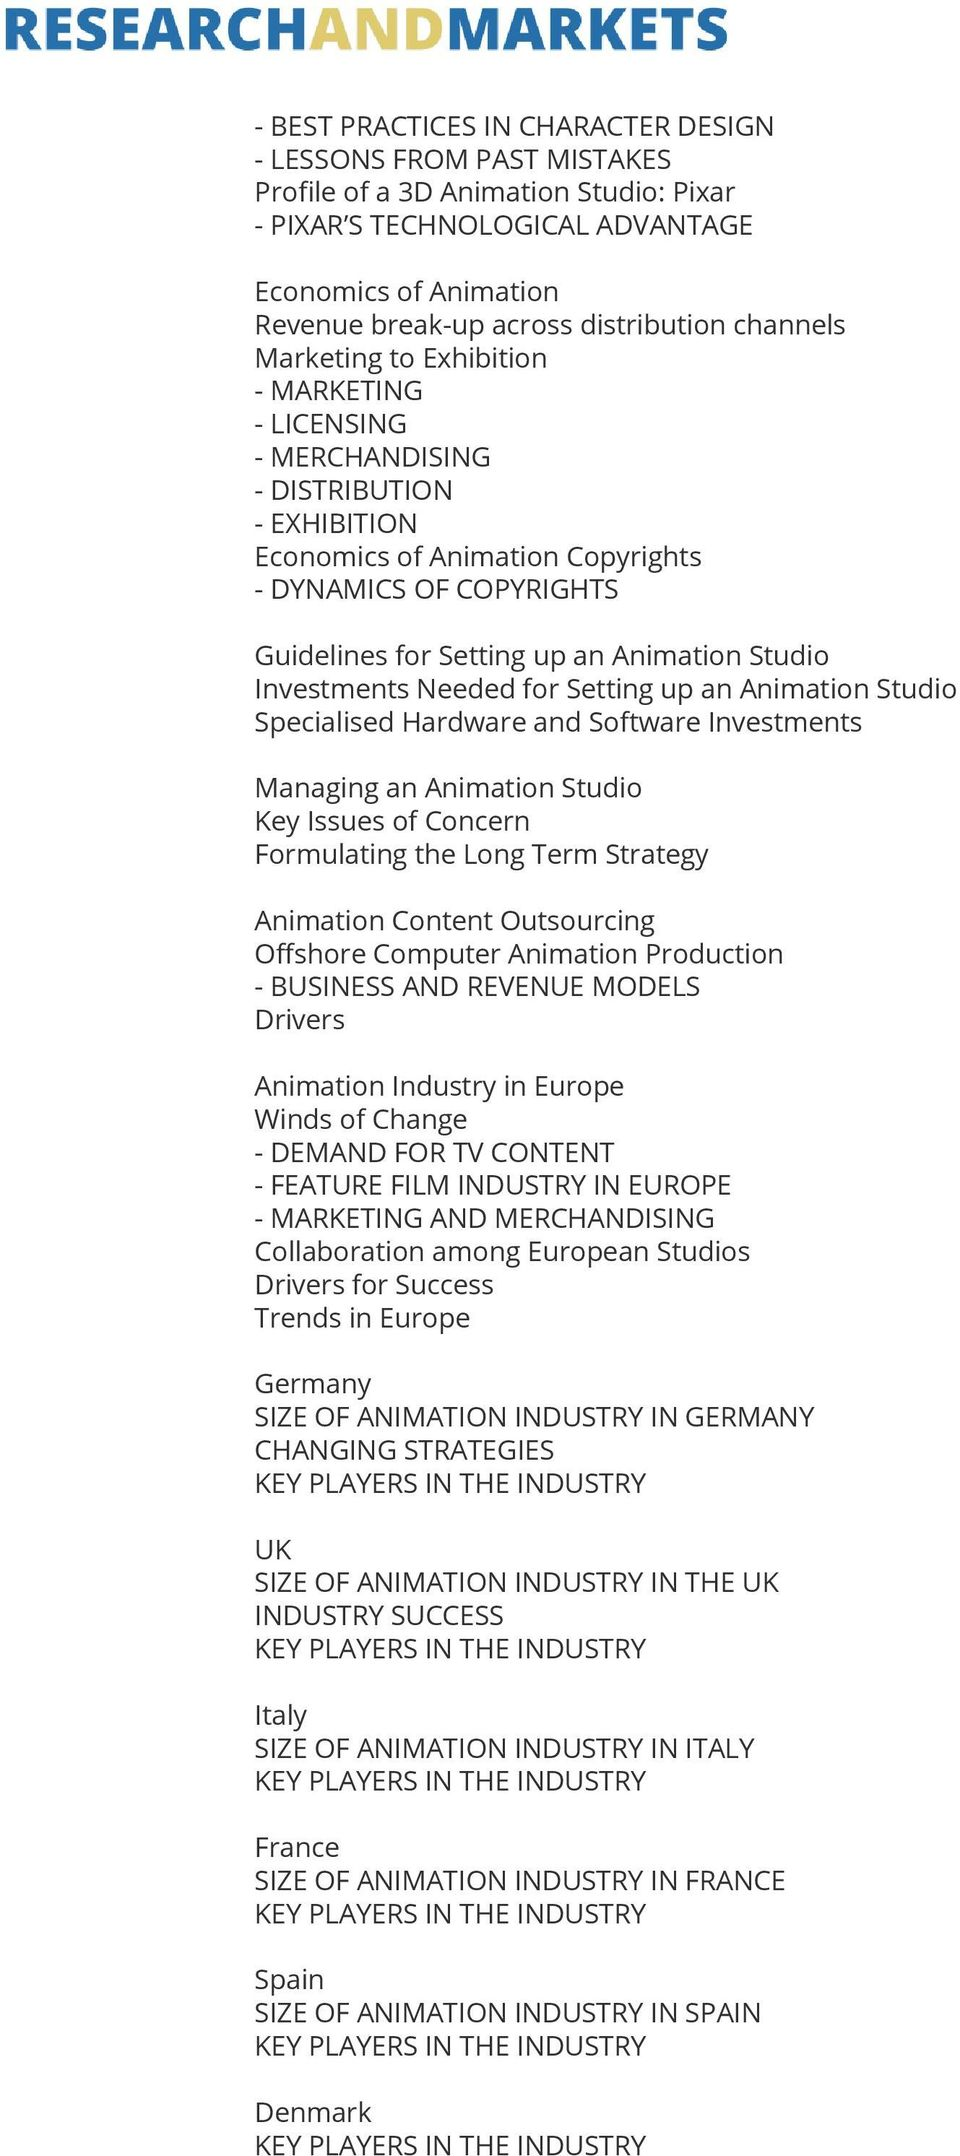 Studio Investments Needed for Setting up an Animation Studio Specialised Hardware and Software Investments Managing an Animation Studio Key Issues of Concern Formulating the Long Term Strategy